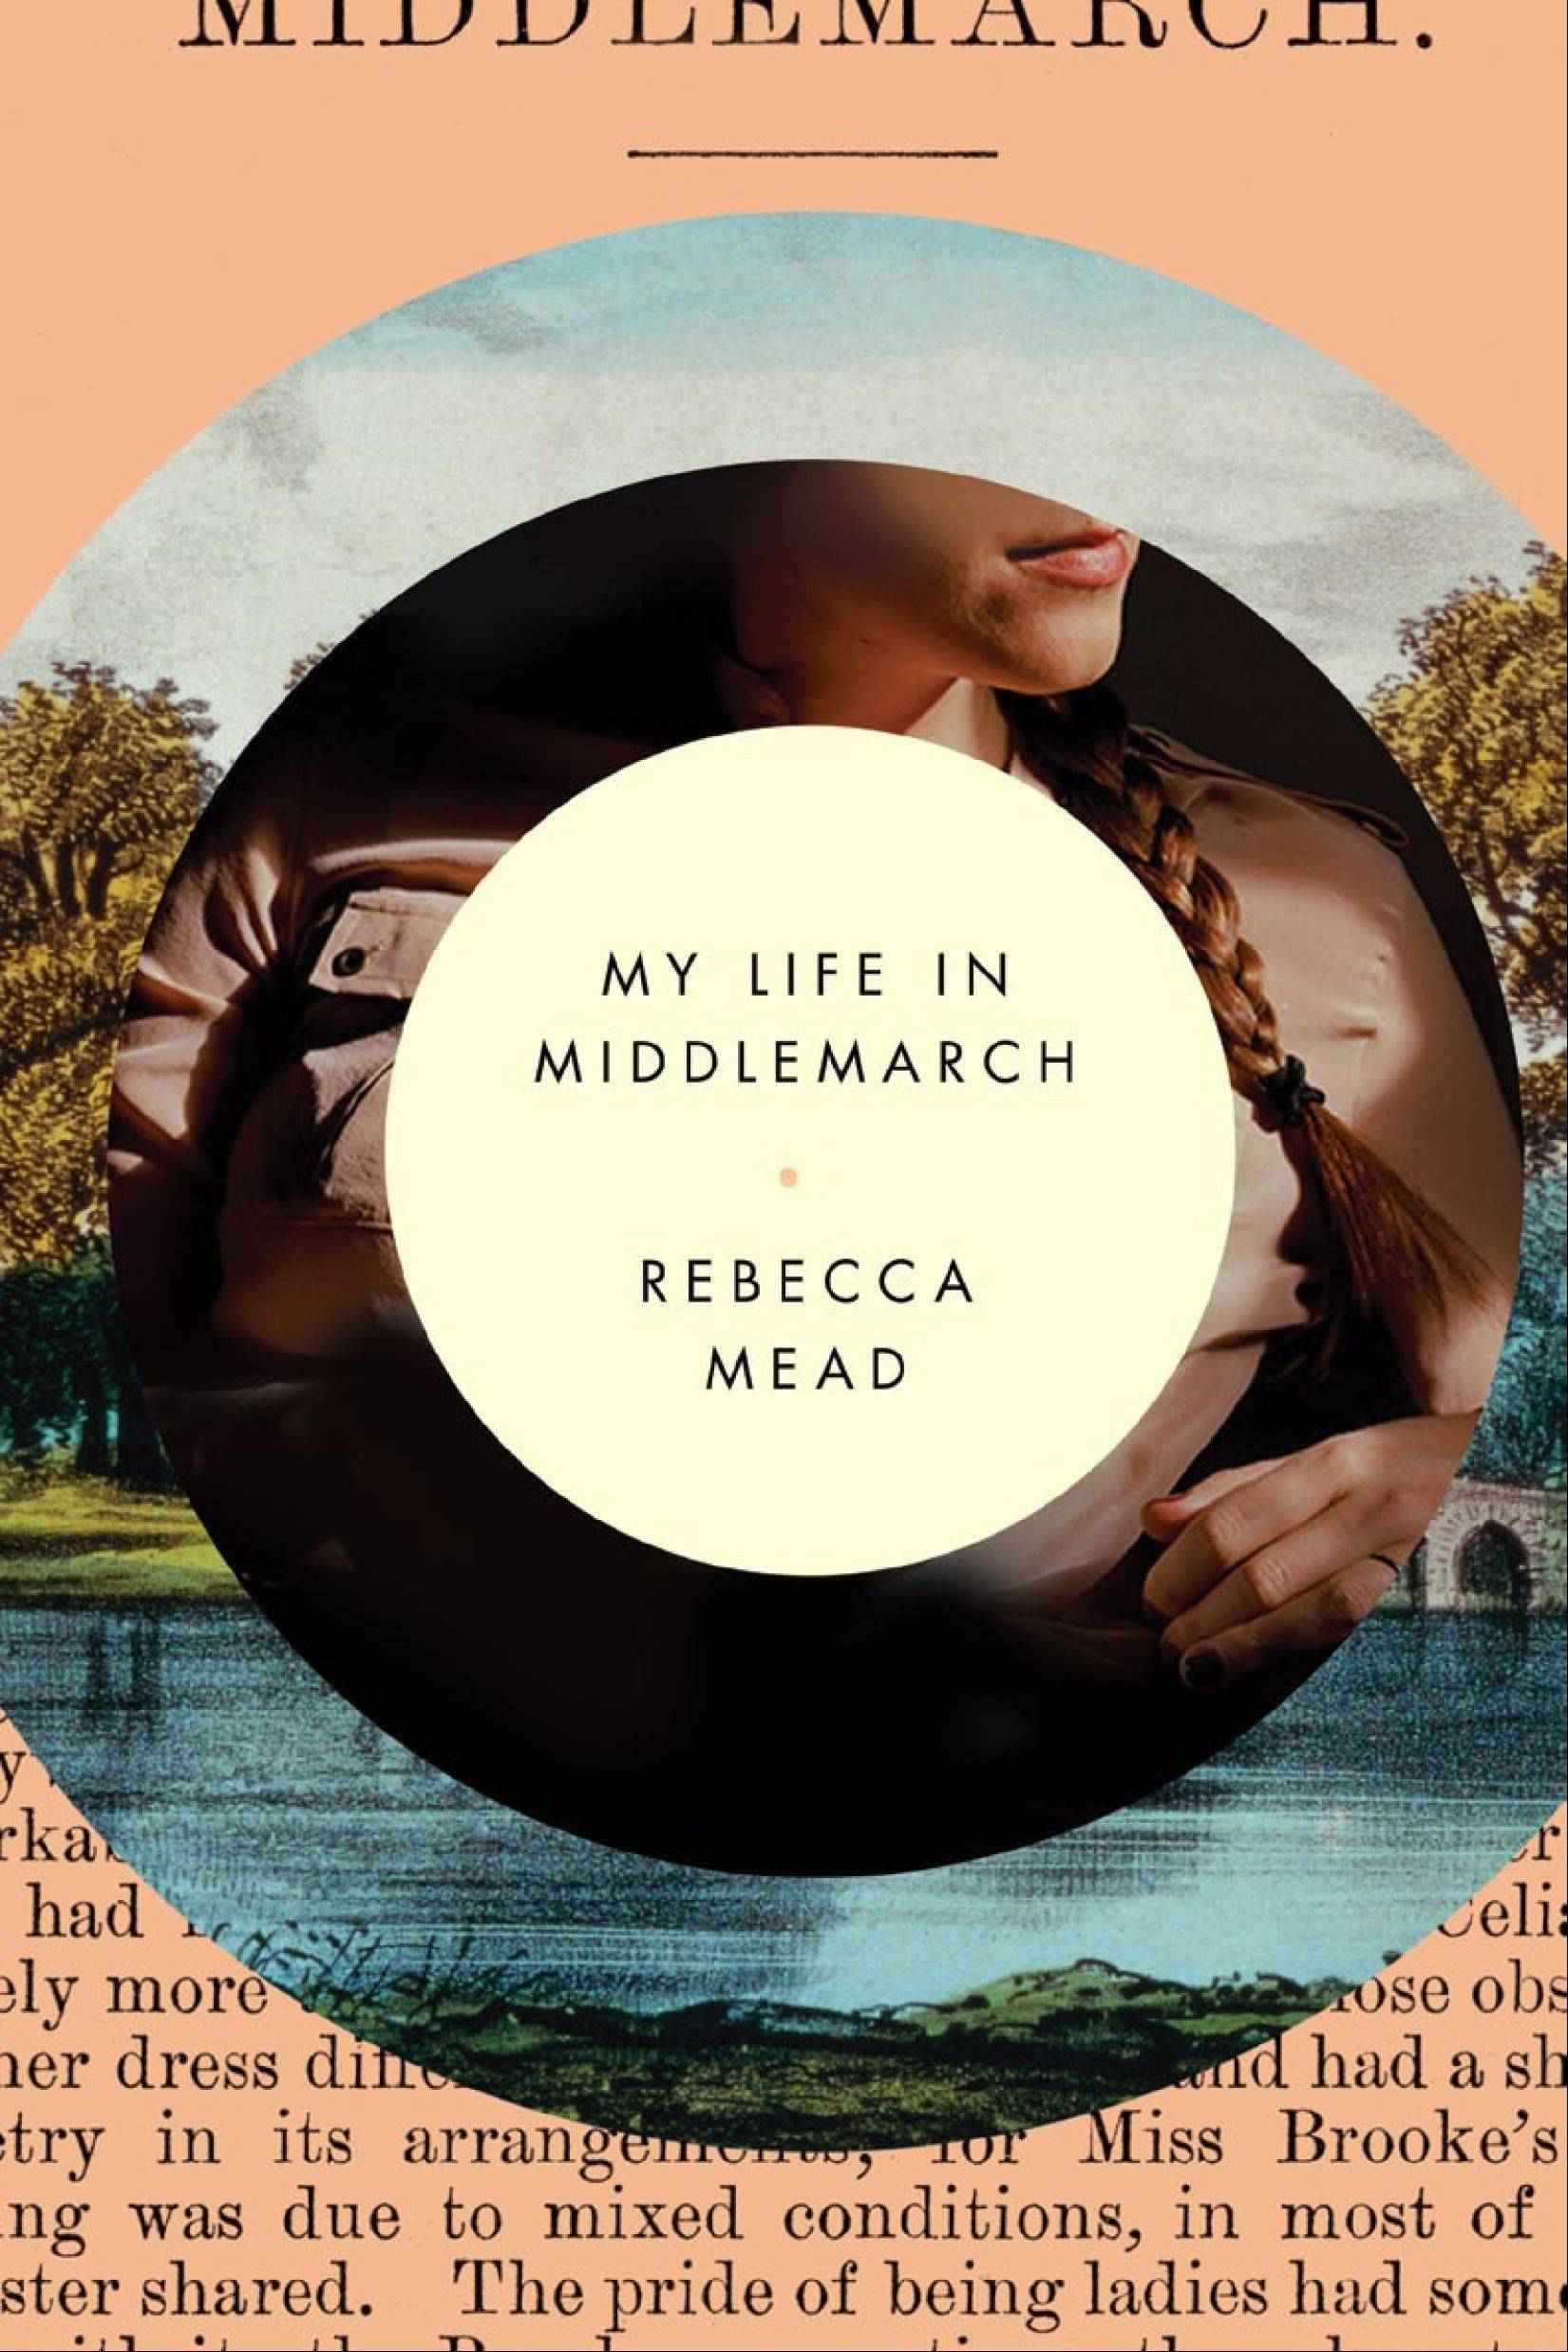 """My Life in Middlemarch"" by Rebecca Mead is partly a memoir and also a minibiography of the great Victorian writer George Eliot."